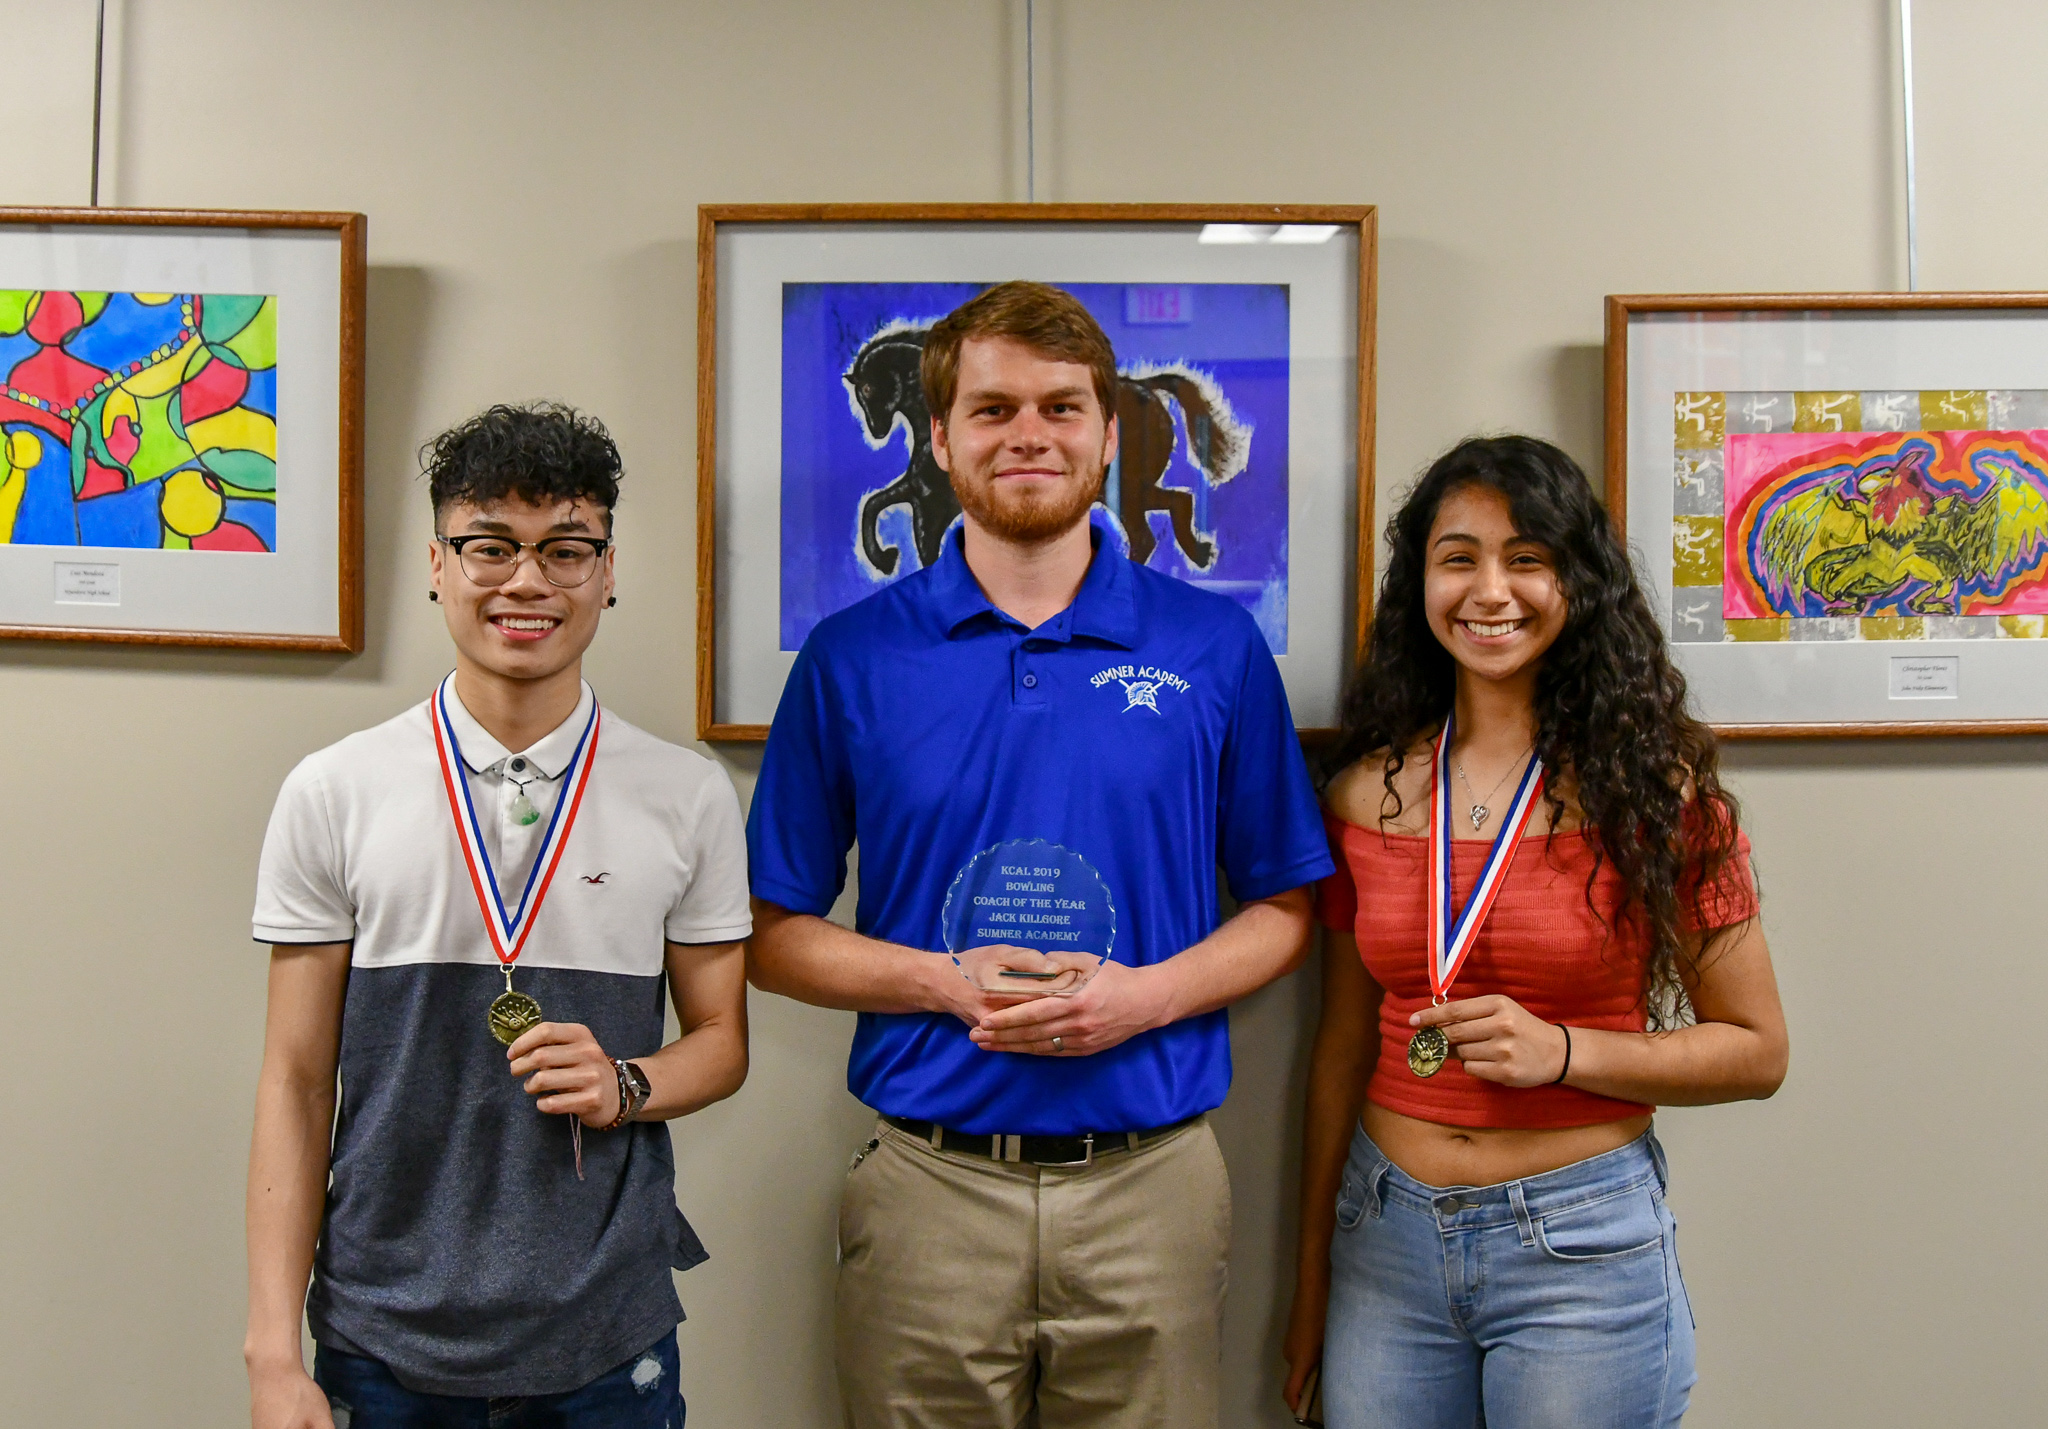 KCAL Player of the Year (Boys Bowling) Andy Lau, KCAL Coach of the Year Jack Kilgore, and 2019 KSHAA State Participant (Bowling), Saida Soriano